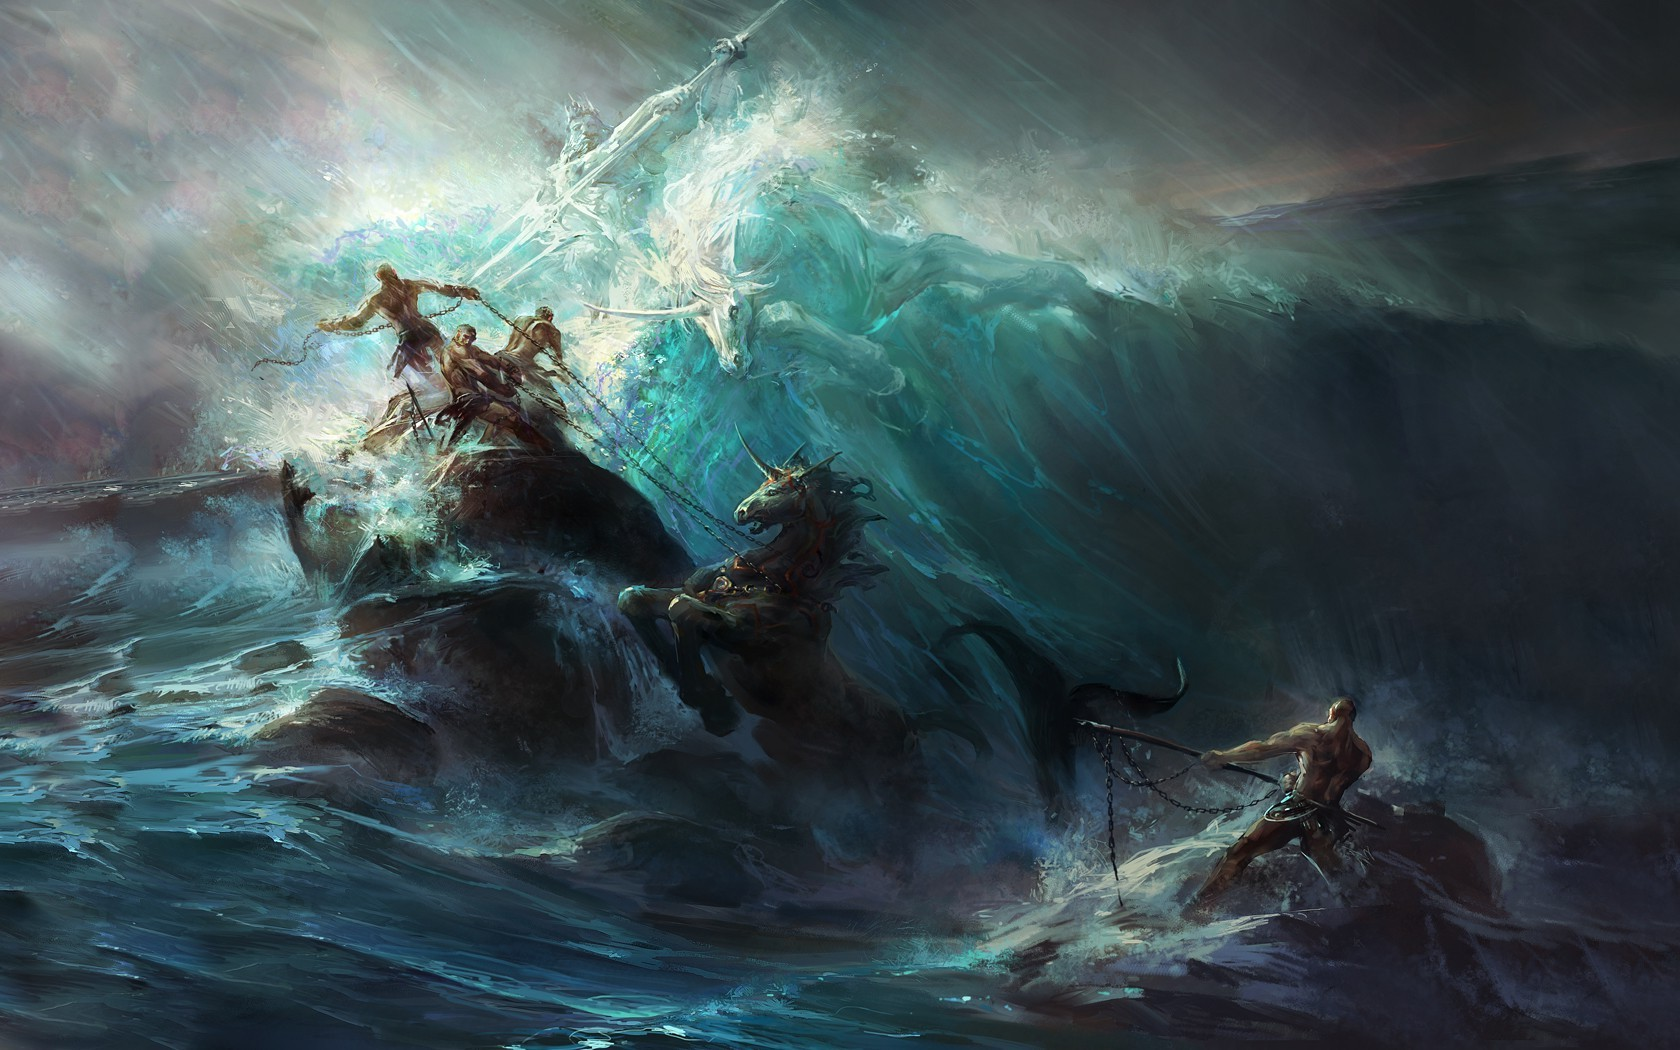 Falling In Reverse Wallpaper 1366x768 Wallpaper Painting Fantasy Art Artwork Underwater